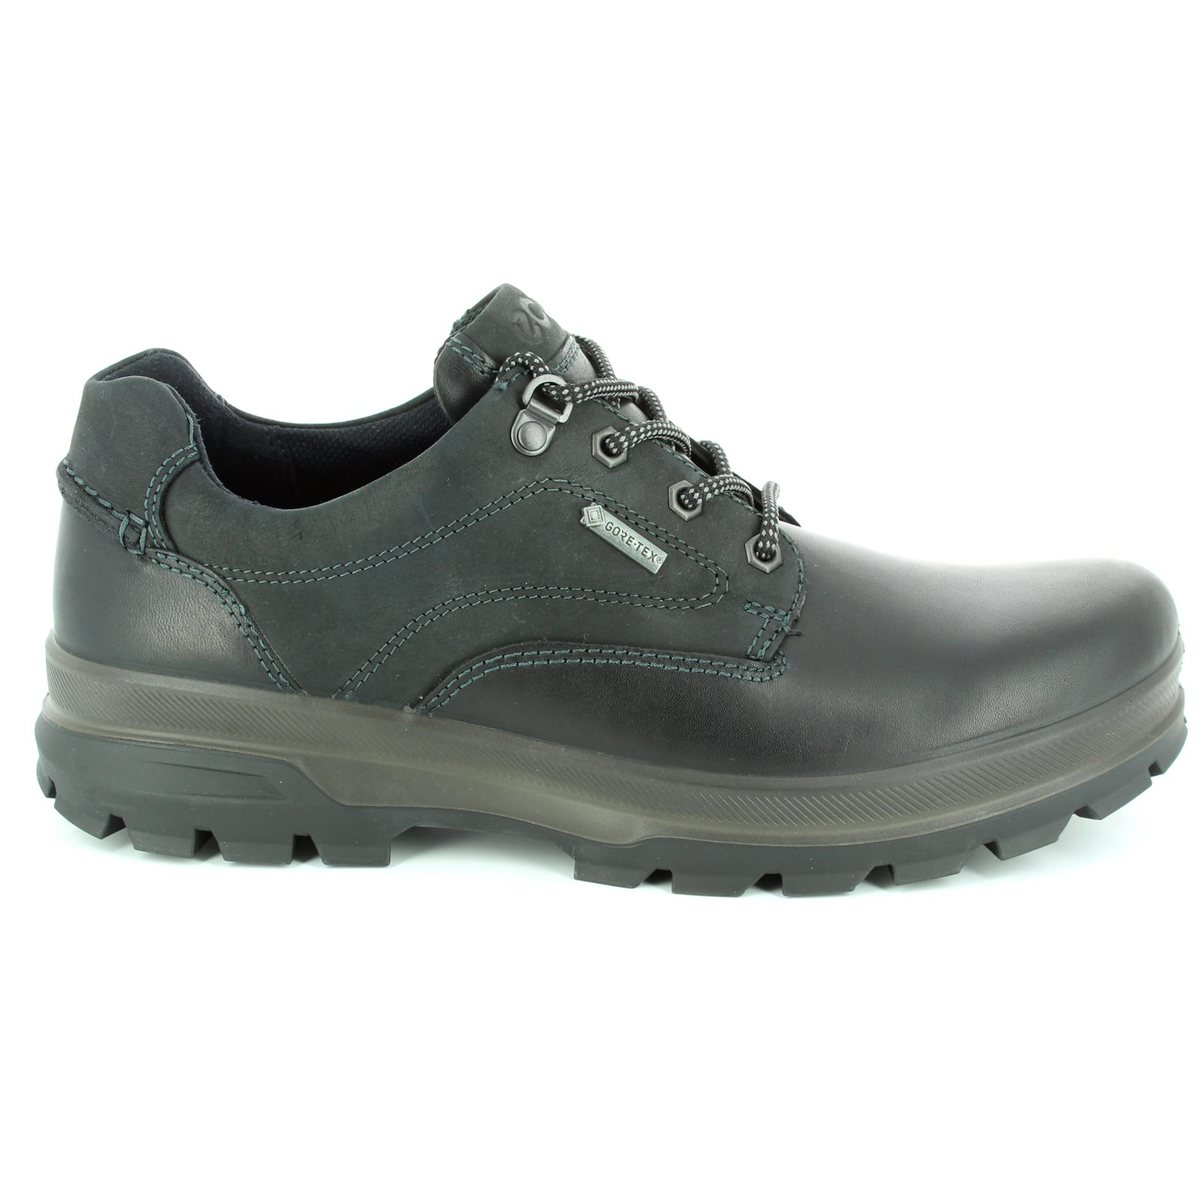 b96b277fe216 ECCO Casual Shoes - Black - 838034 51707 RUGGED GORE-TEX